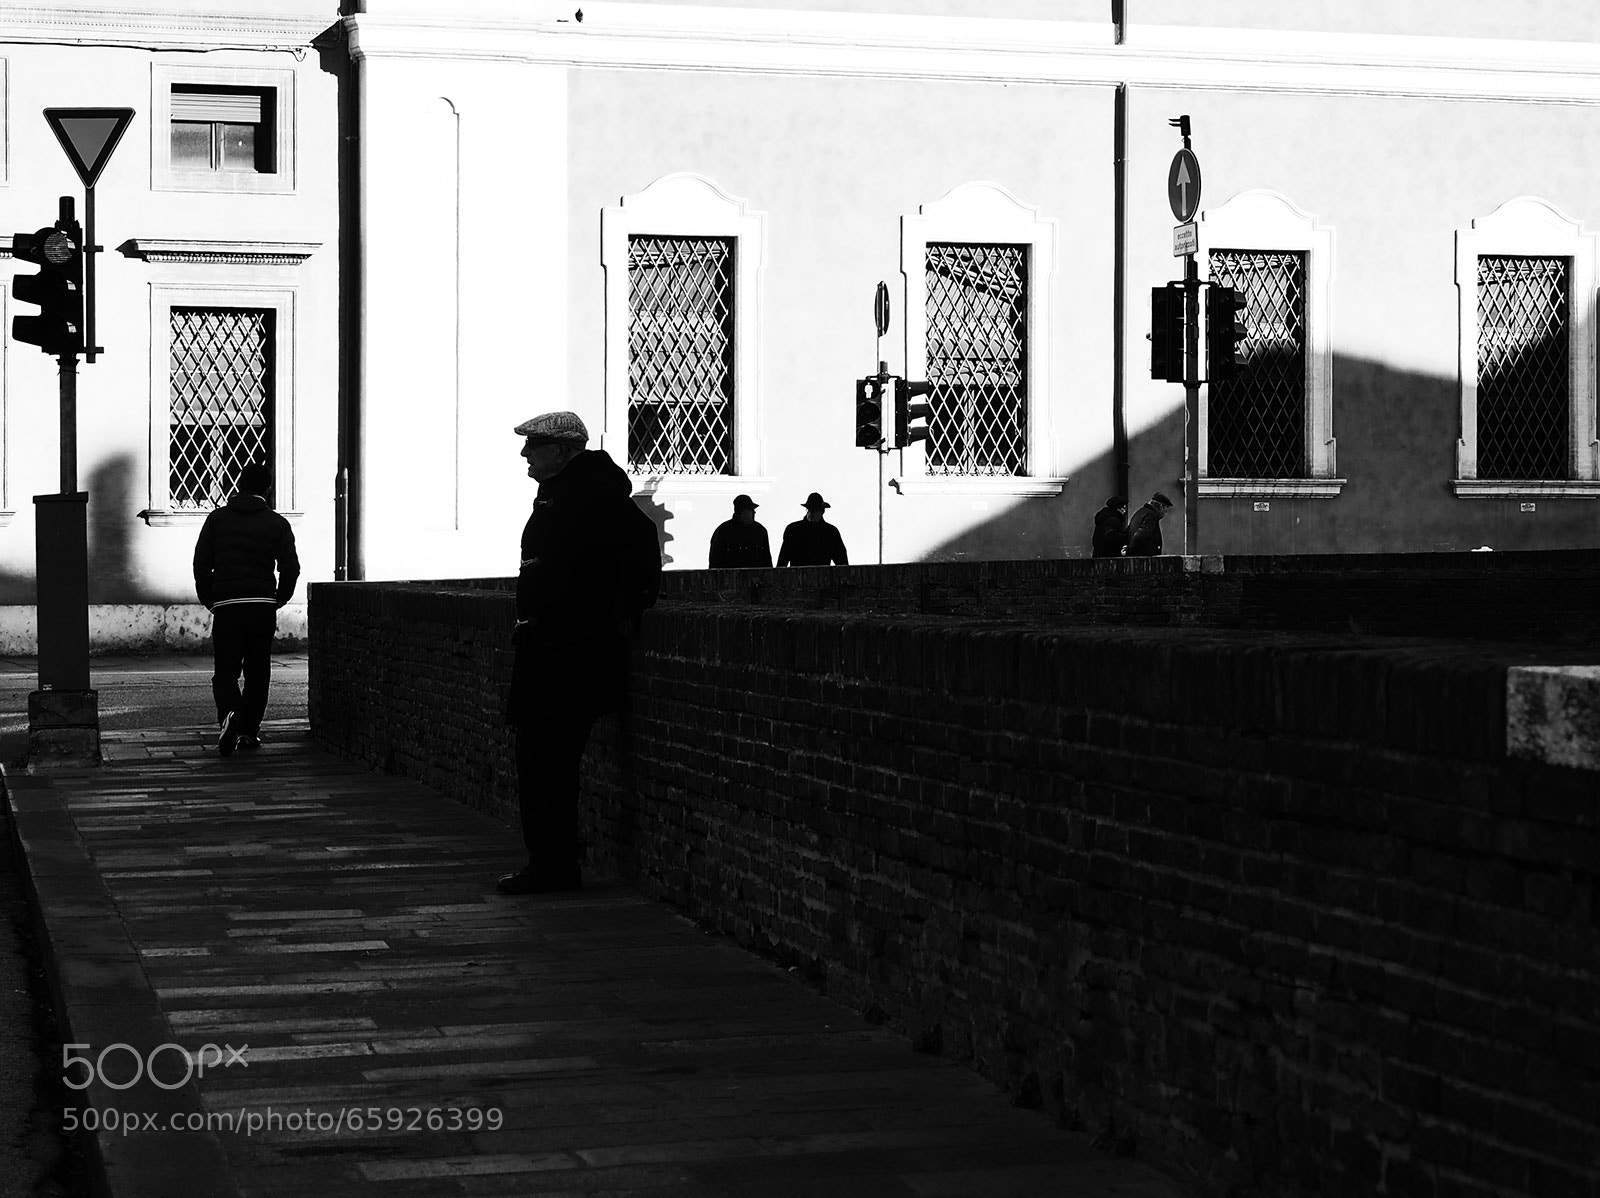 Photograph People by Stella Trasforini on 500px